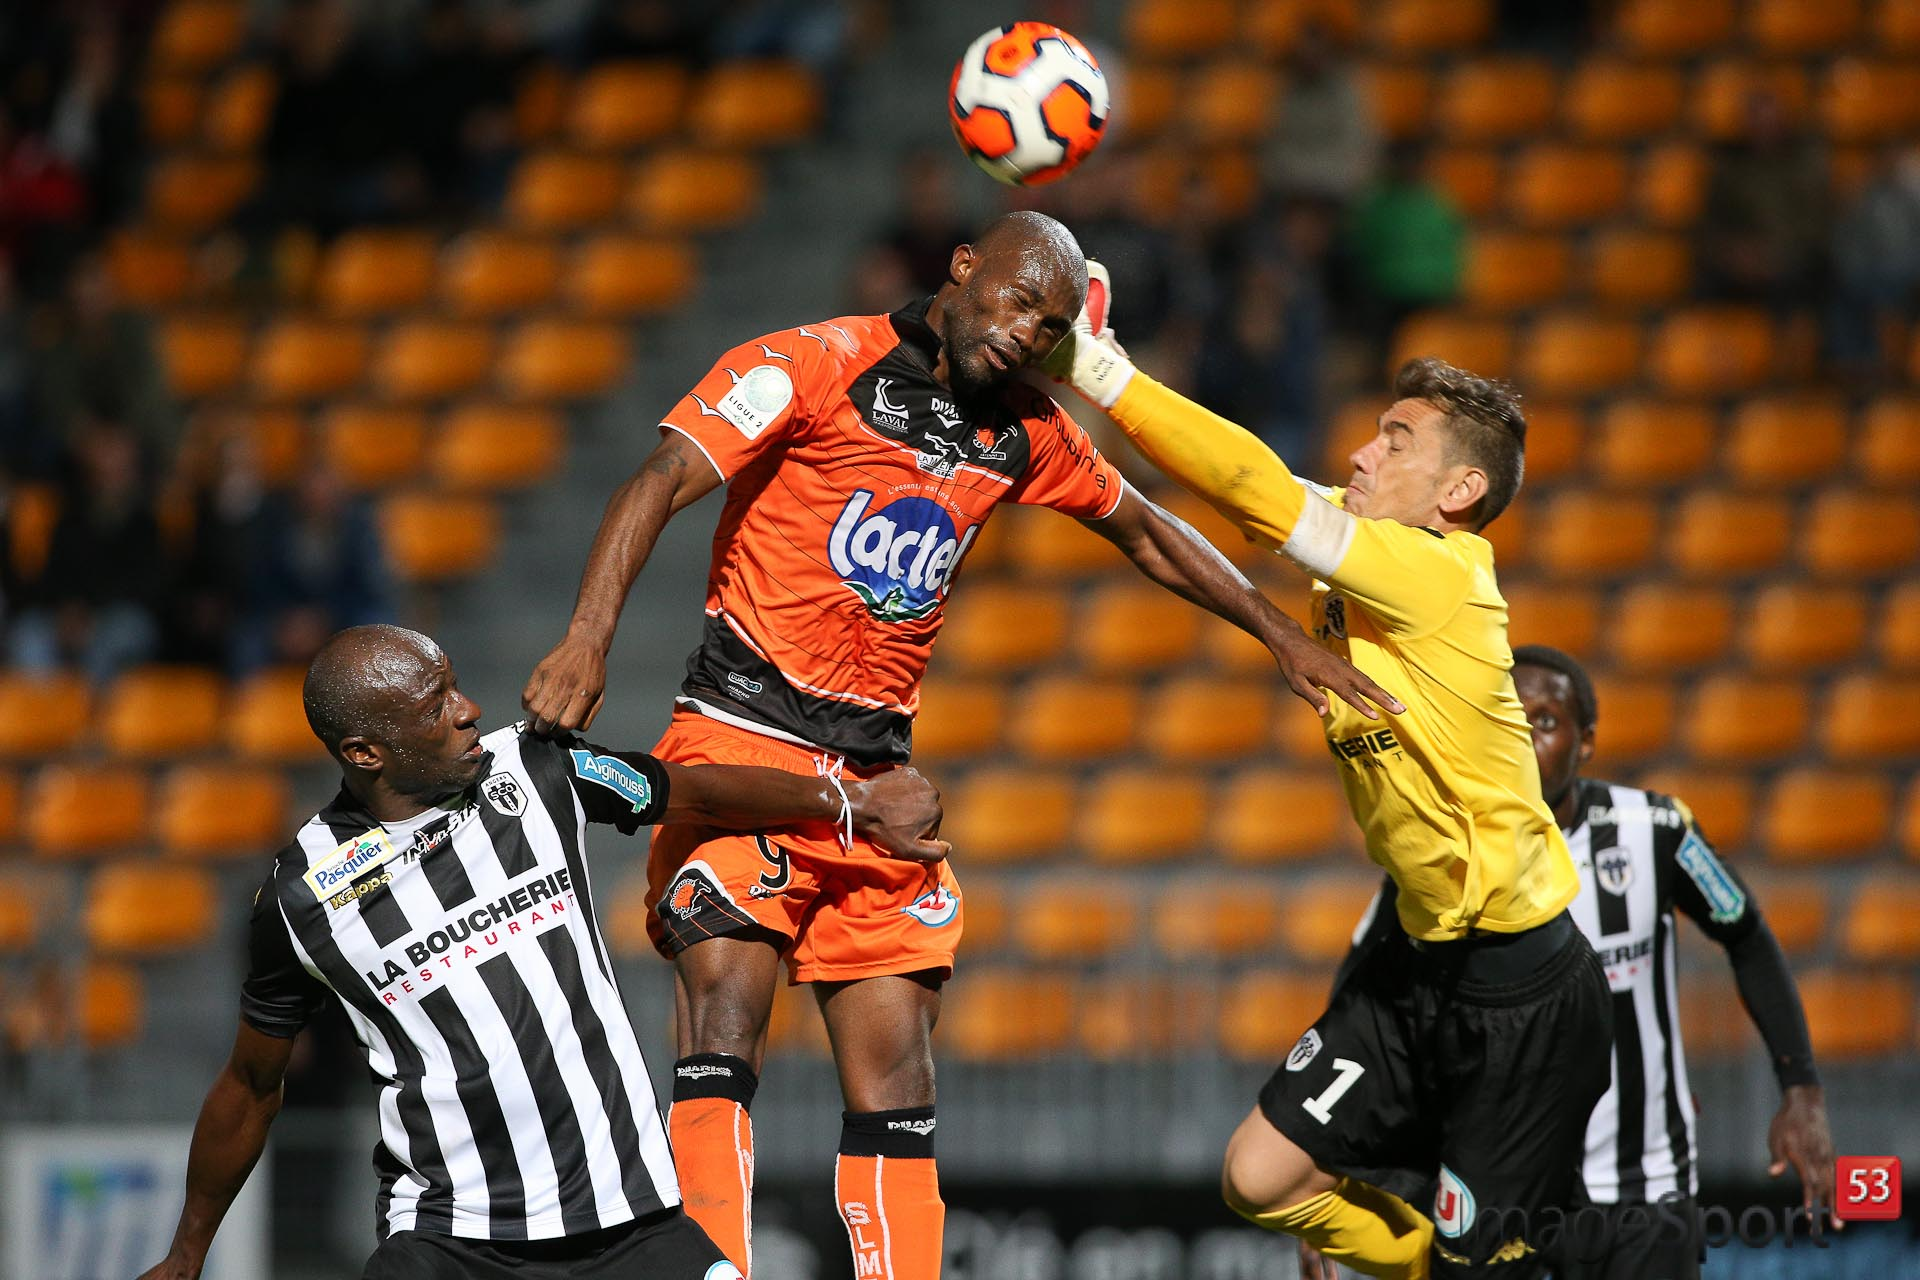 NG_1314_Ligue2_J06_Laval-Angers_12